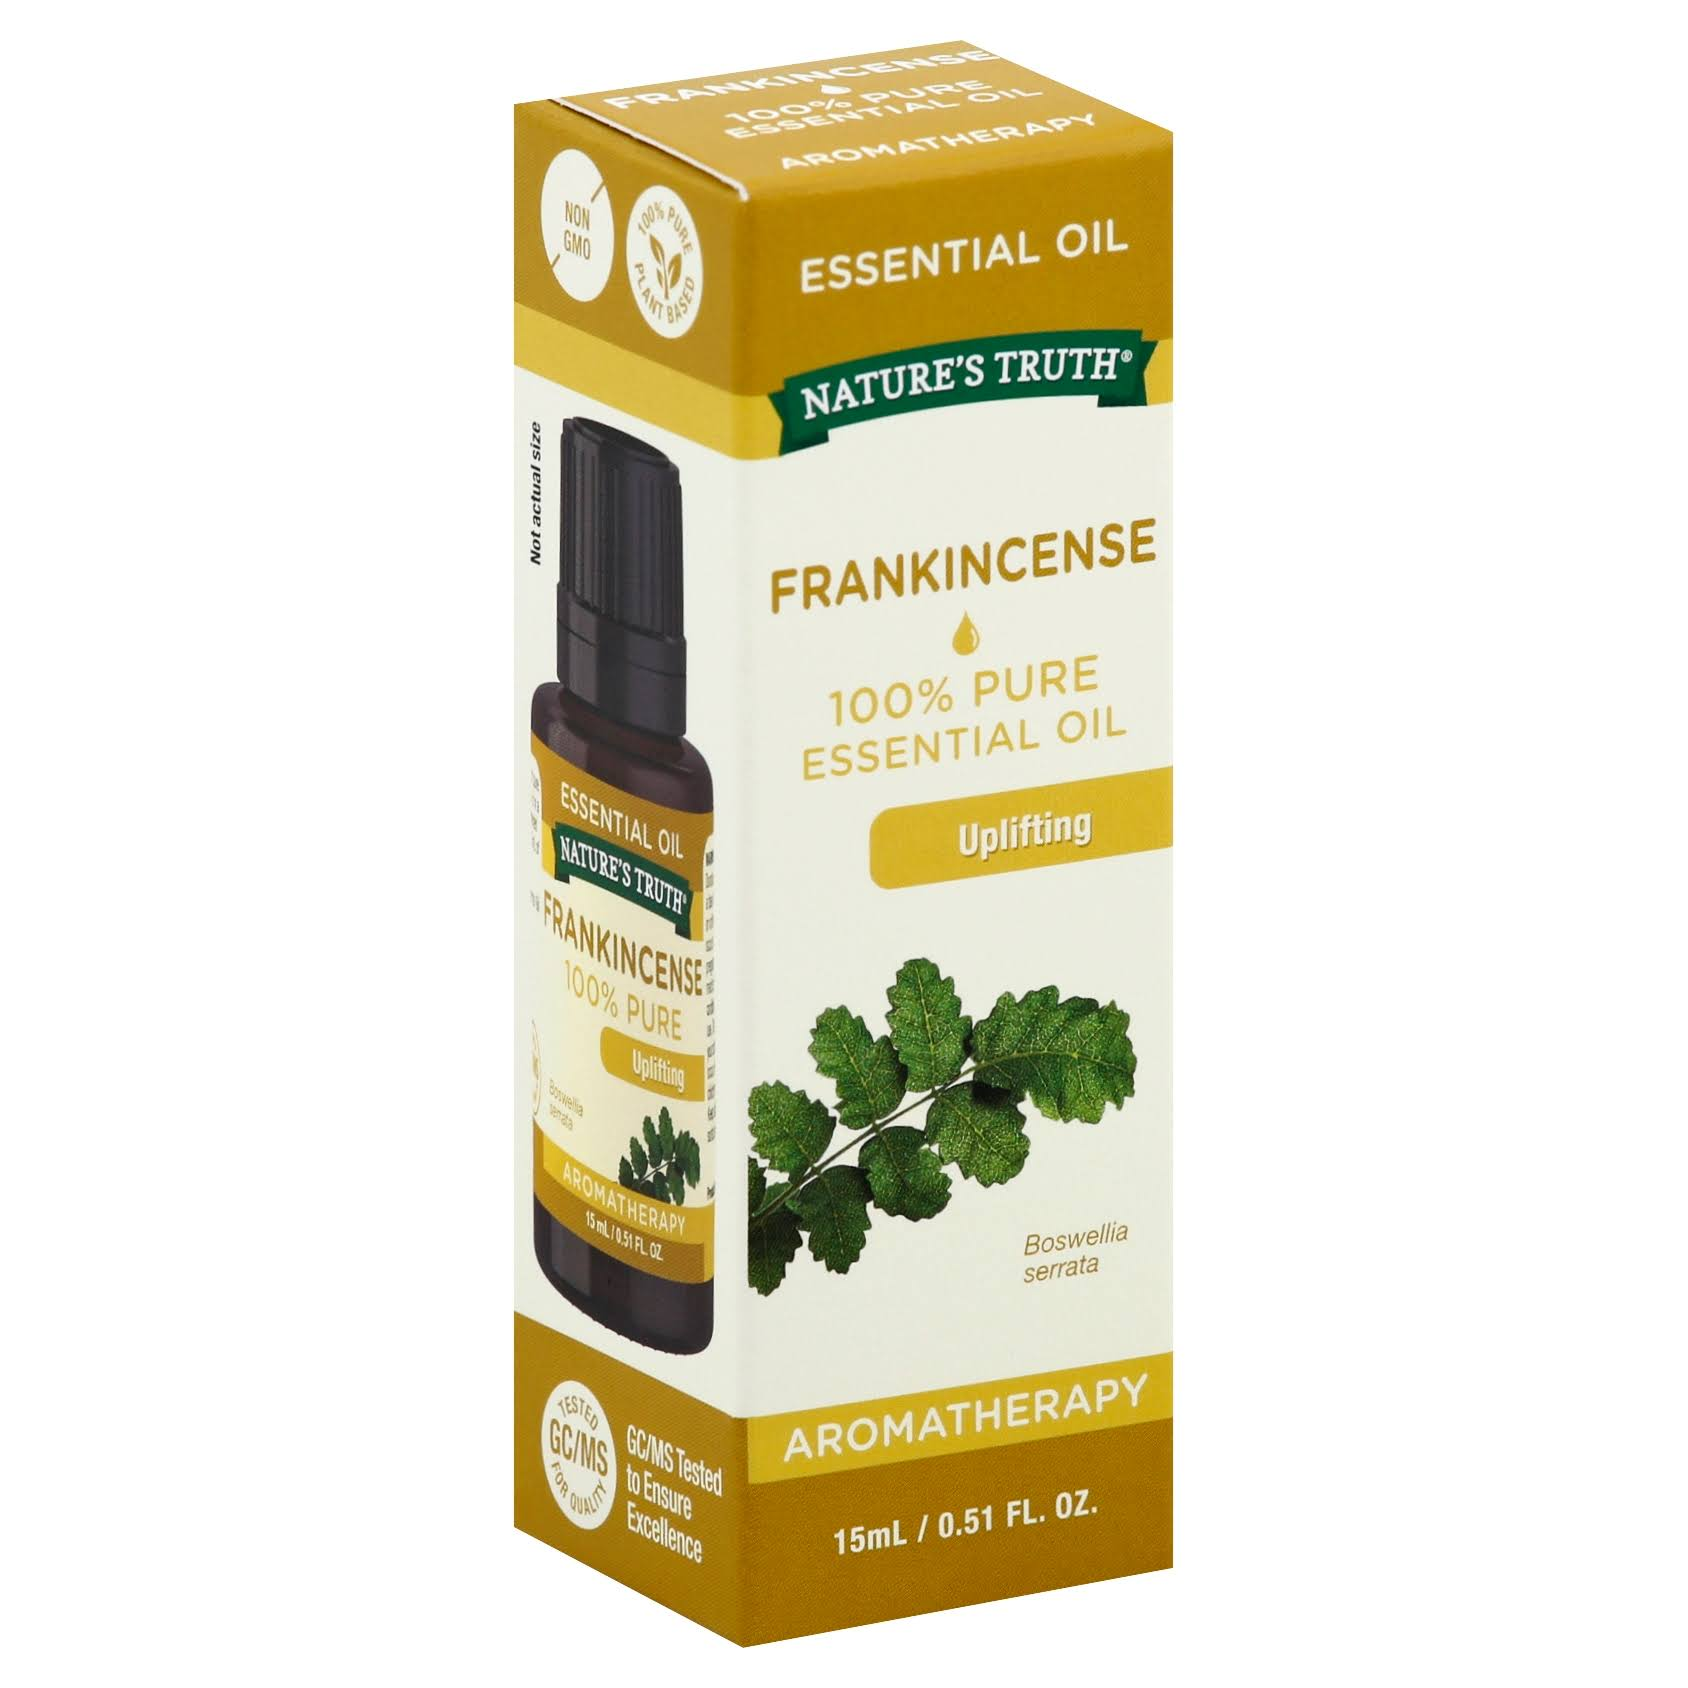 Natures Truth Aromatherapy Pure Essential Oil - Frankincense, 0.51oz